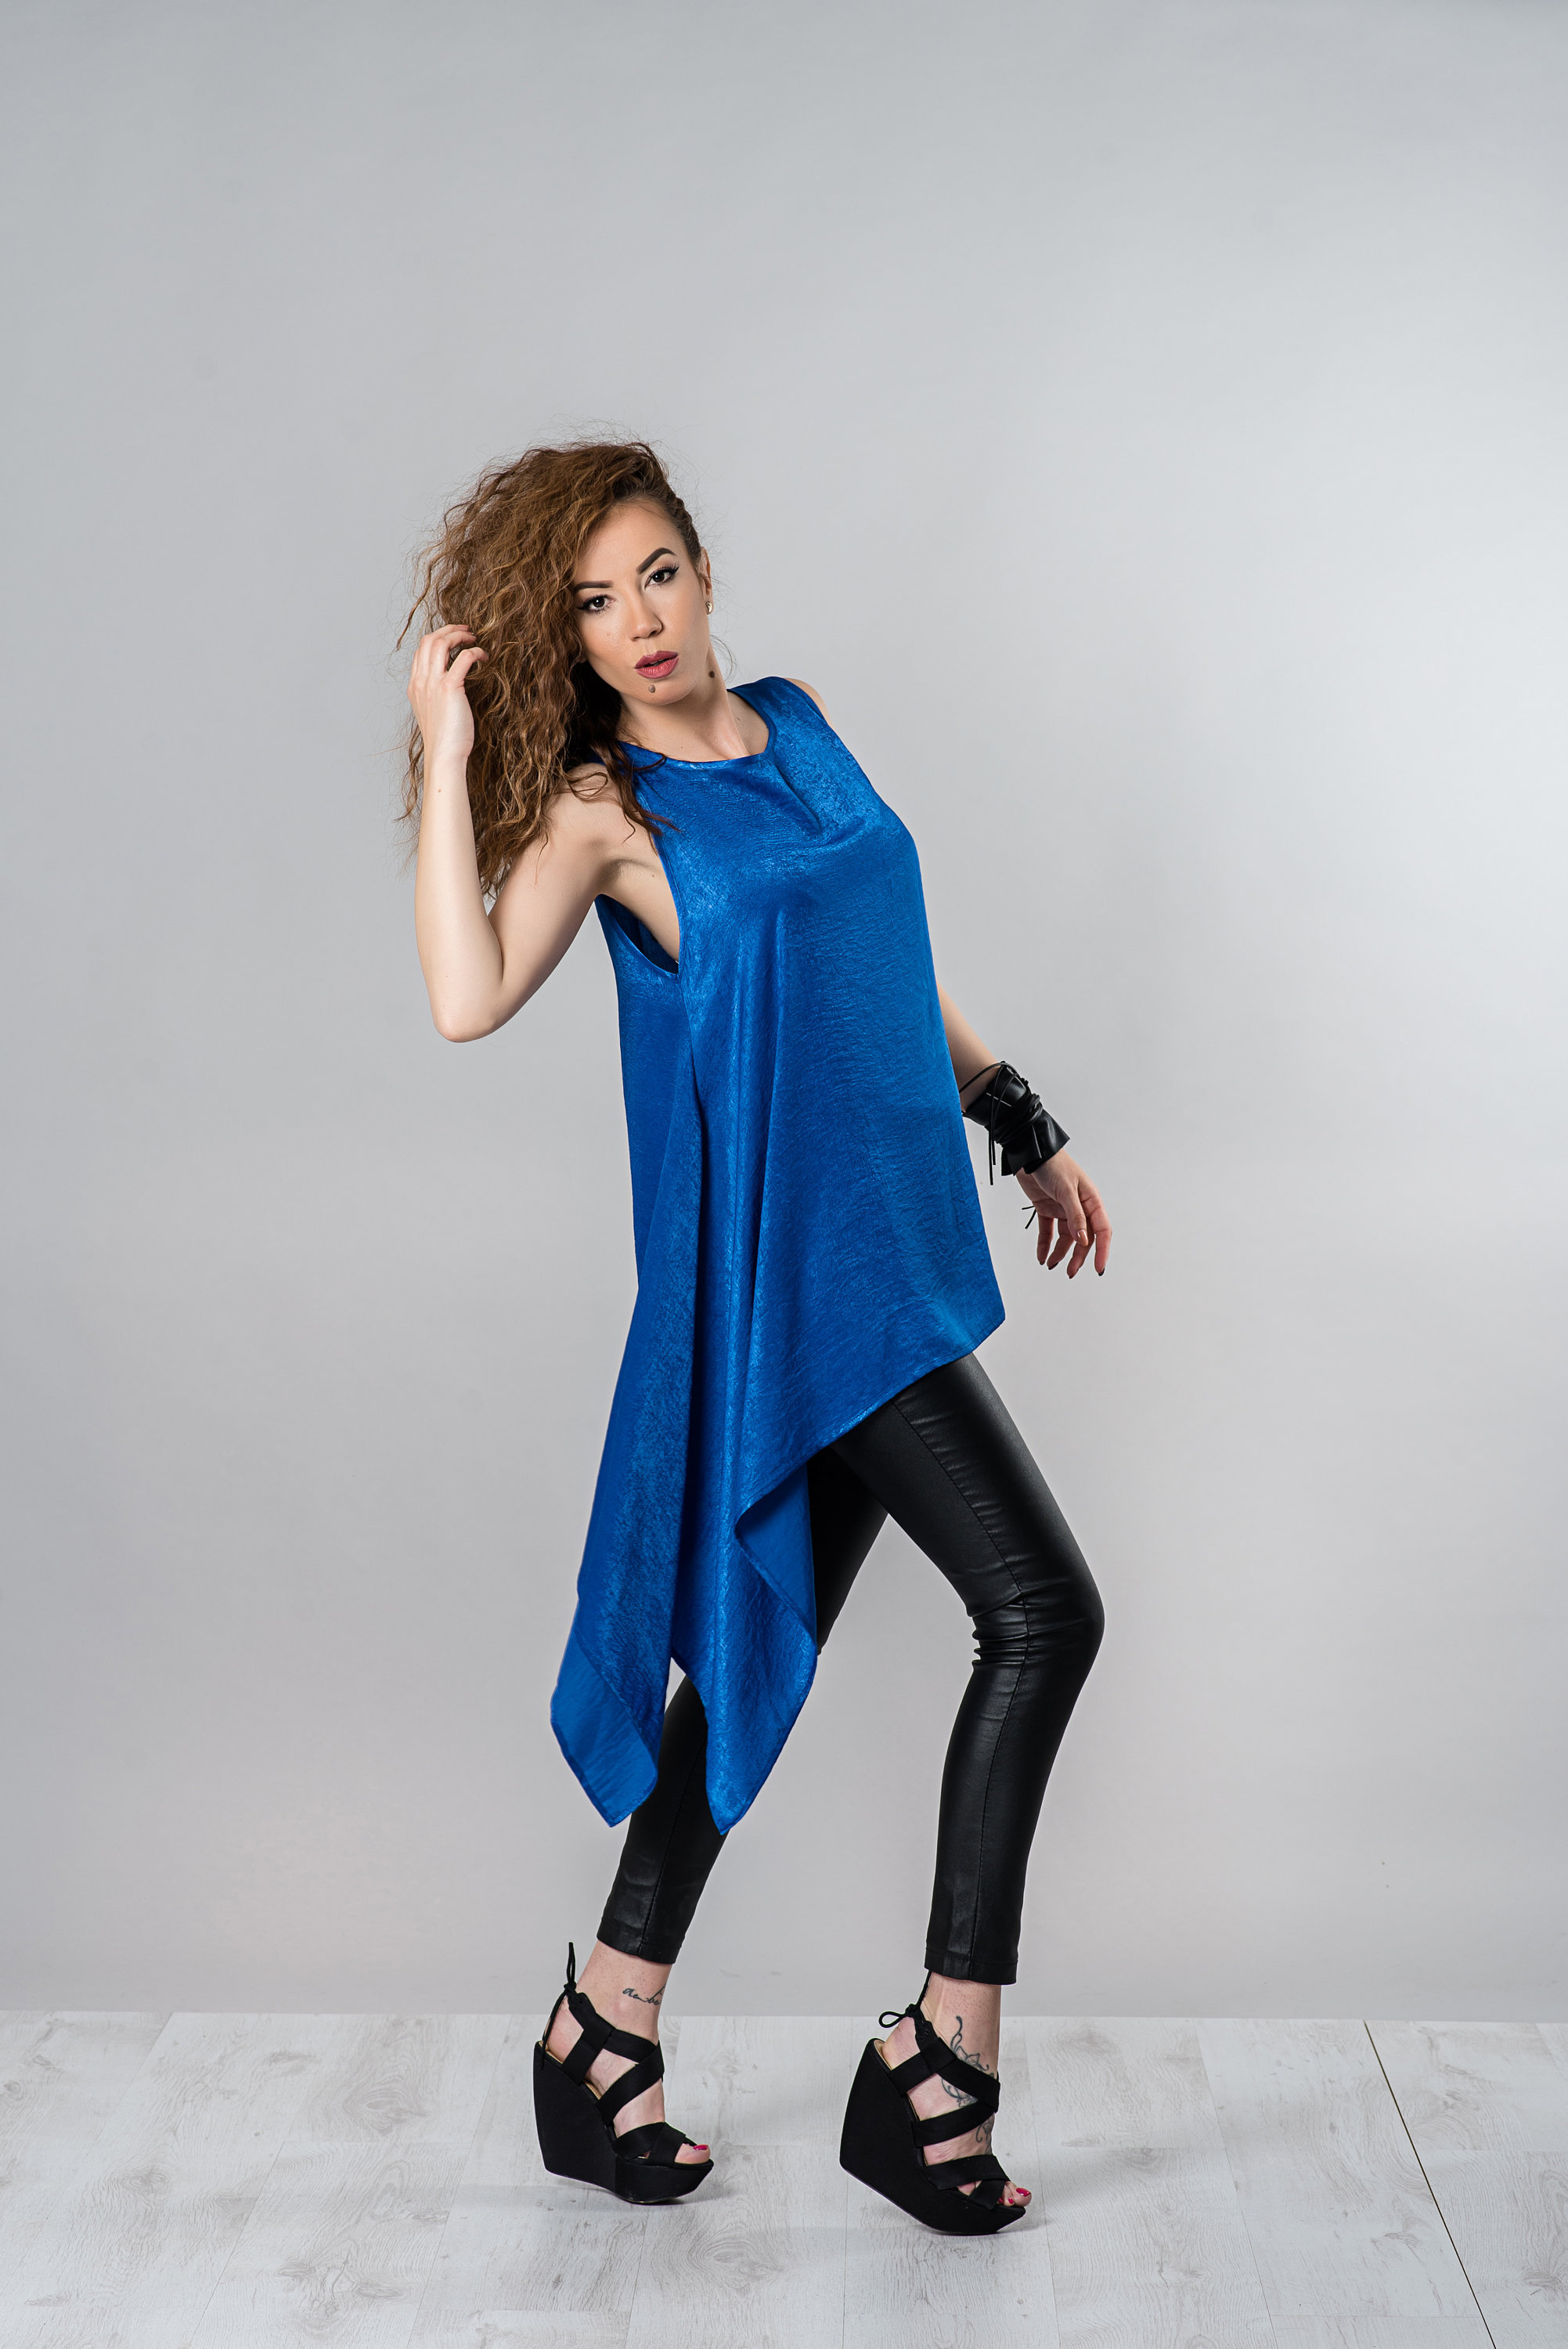 Asymmetrical Tunic, Blue Tunic Top, Silk Tunic, Summer Tunic Top, Long Tunic, Sleeveless Tunic, Party Top, Casual Tunic, Plus Size Clothing